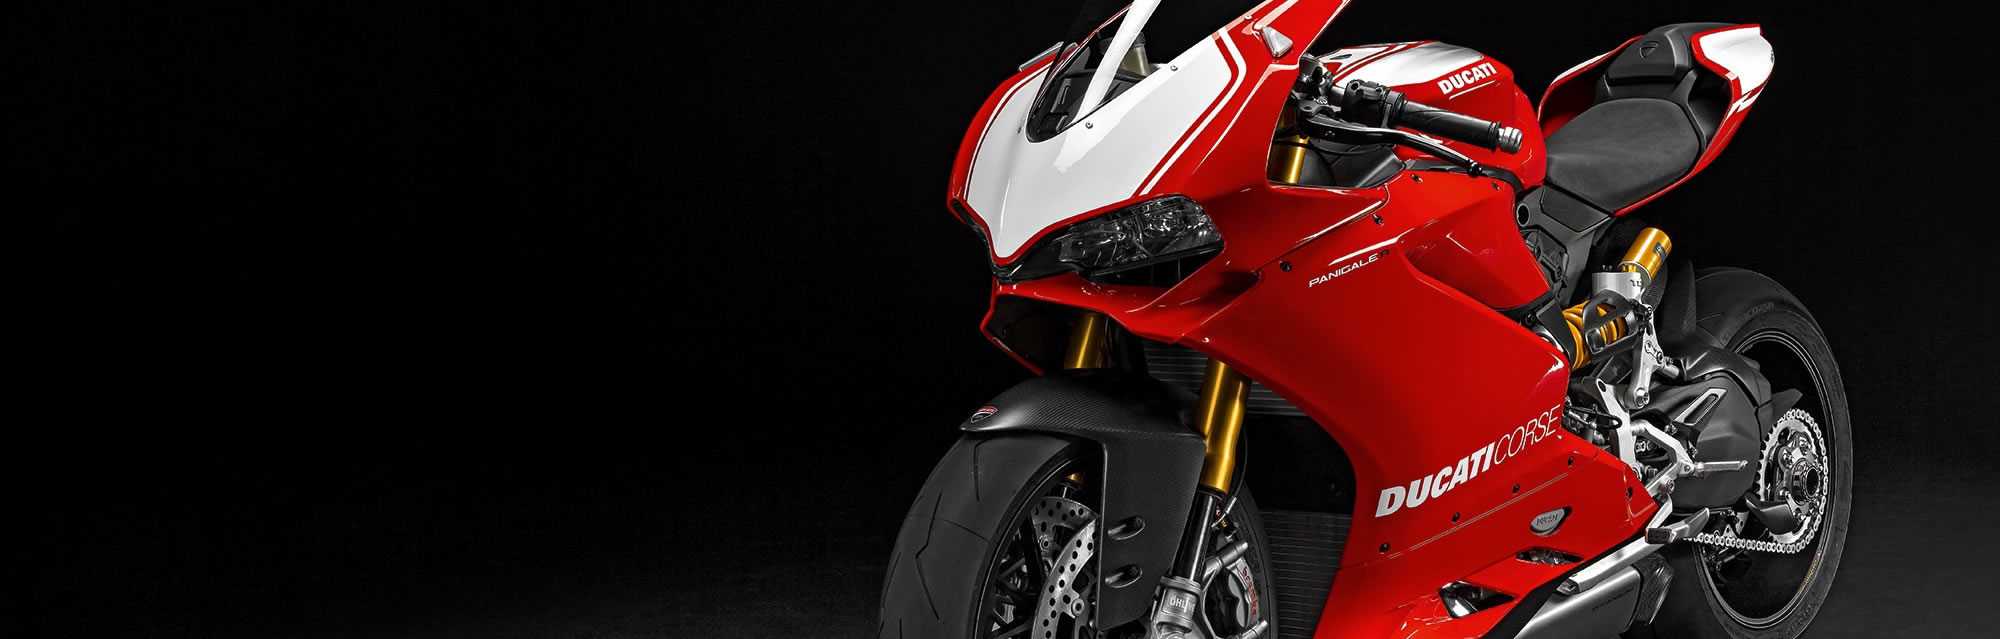 SUPERBIKE PANIGALE R / DNA RACING